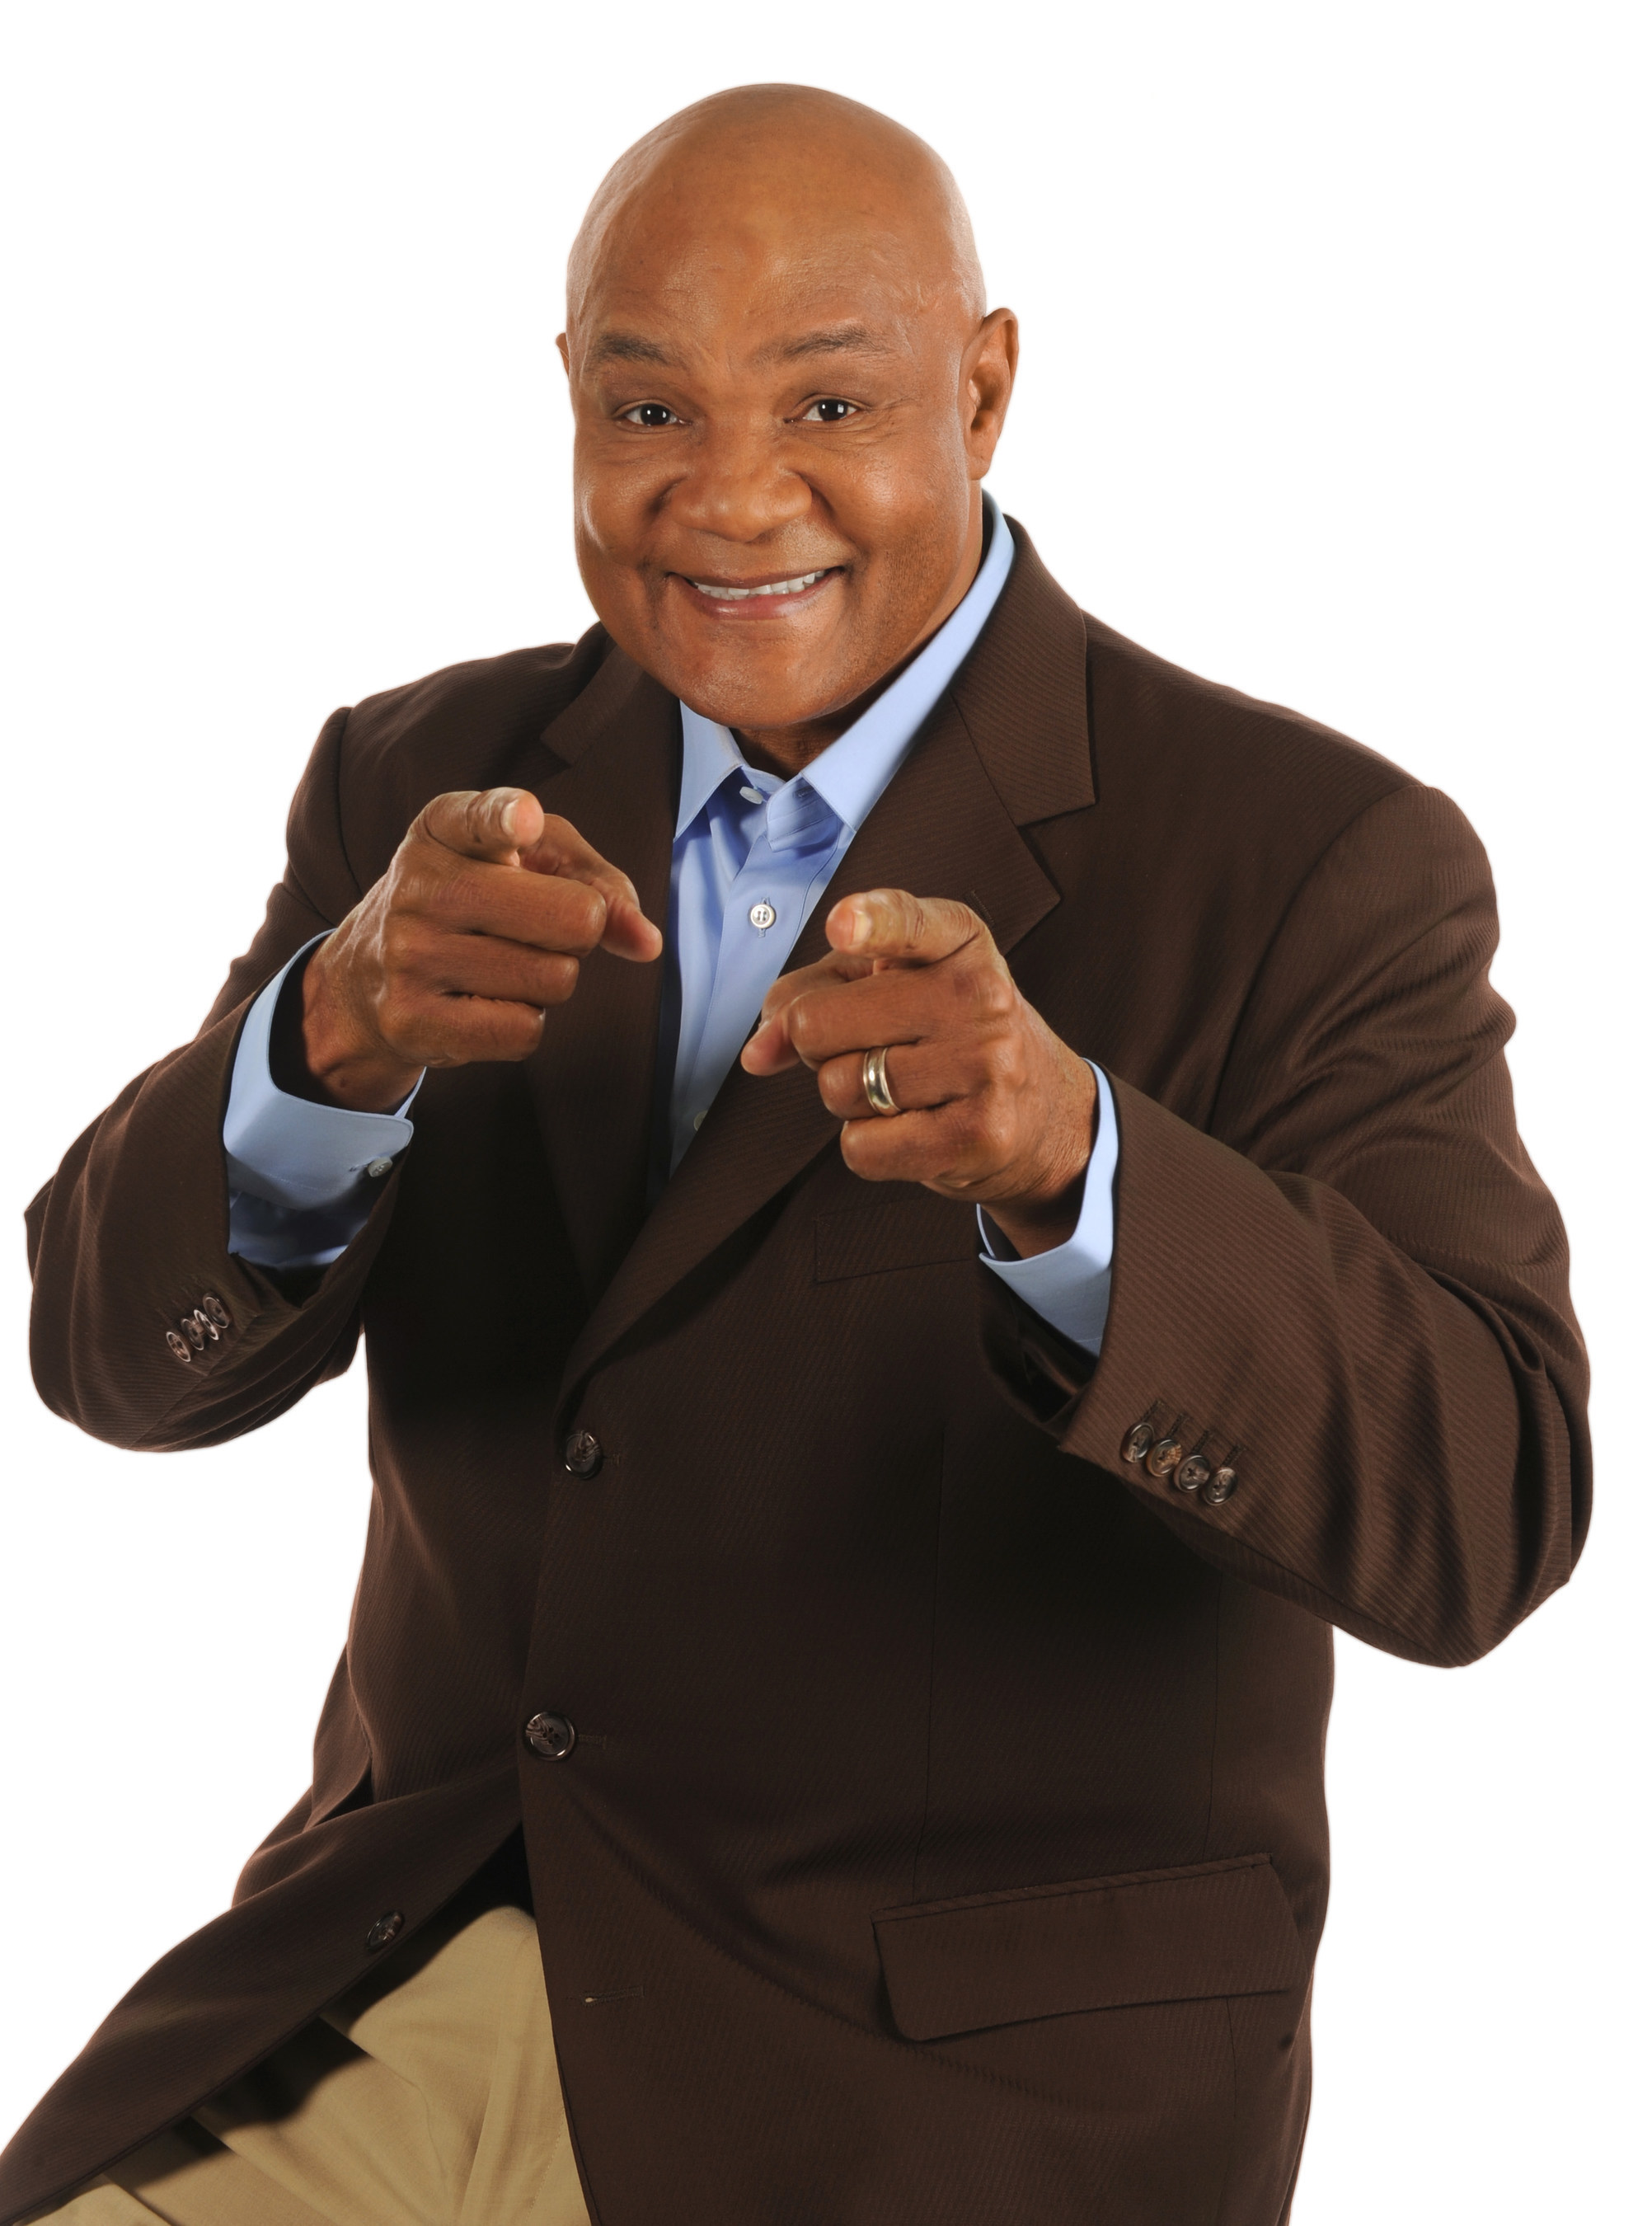 George Foreman, Two-time Heavyweight Champ and Entrepreneur, is the 2016 INPEX Keynote Speaker. INPEX, America's Largest Invention Trade Show, will be held June 7-9 at the Monroeville Convention Center, near Pittsburgh, Pa. George will speak to inventors on Thursday, June 9 as a part of the George Foreman Inventors University, a series of educational seminars for inventors ranging from branding to intellectual property. For more information, visit www.inpex.com or call 1-888-54-INPEX.